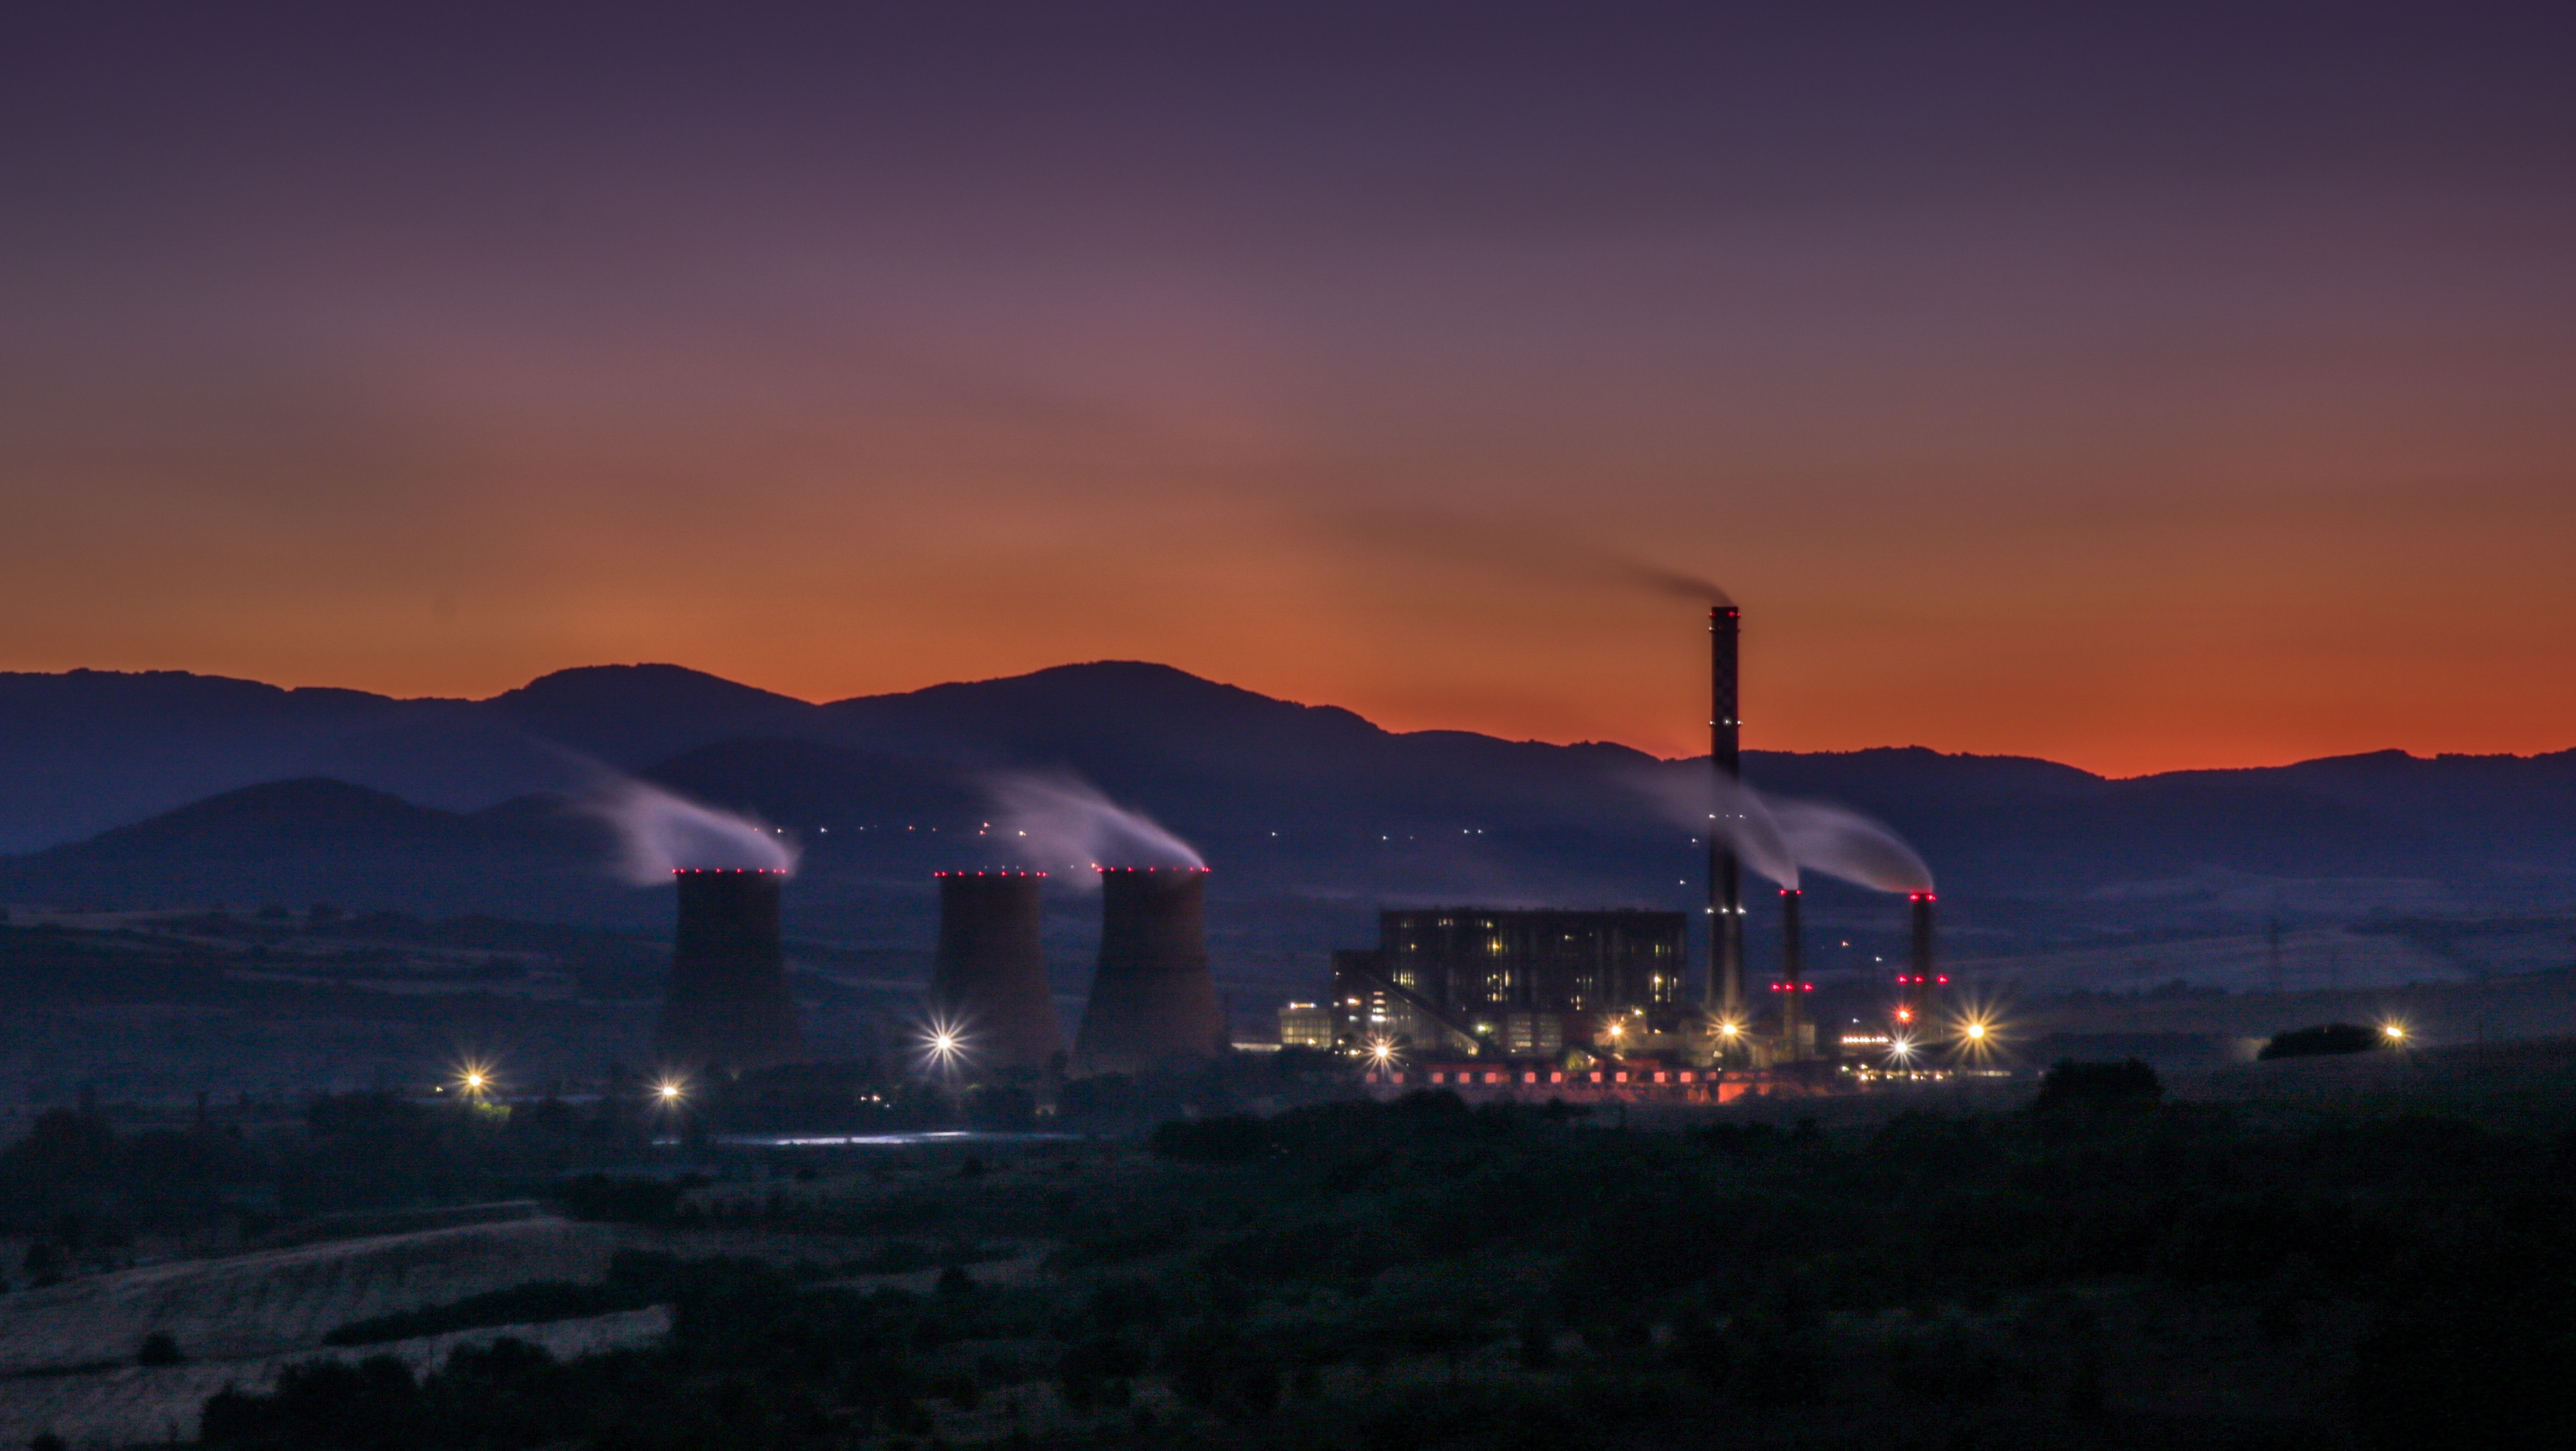 A full view of a thermal power plant with the sunset in the background